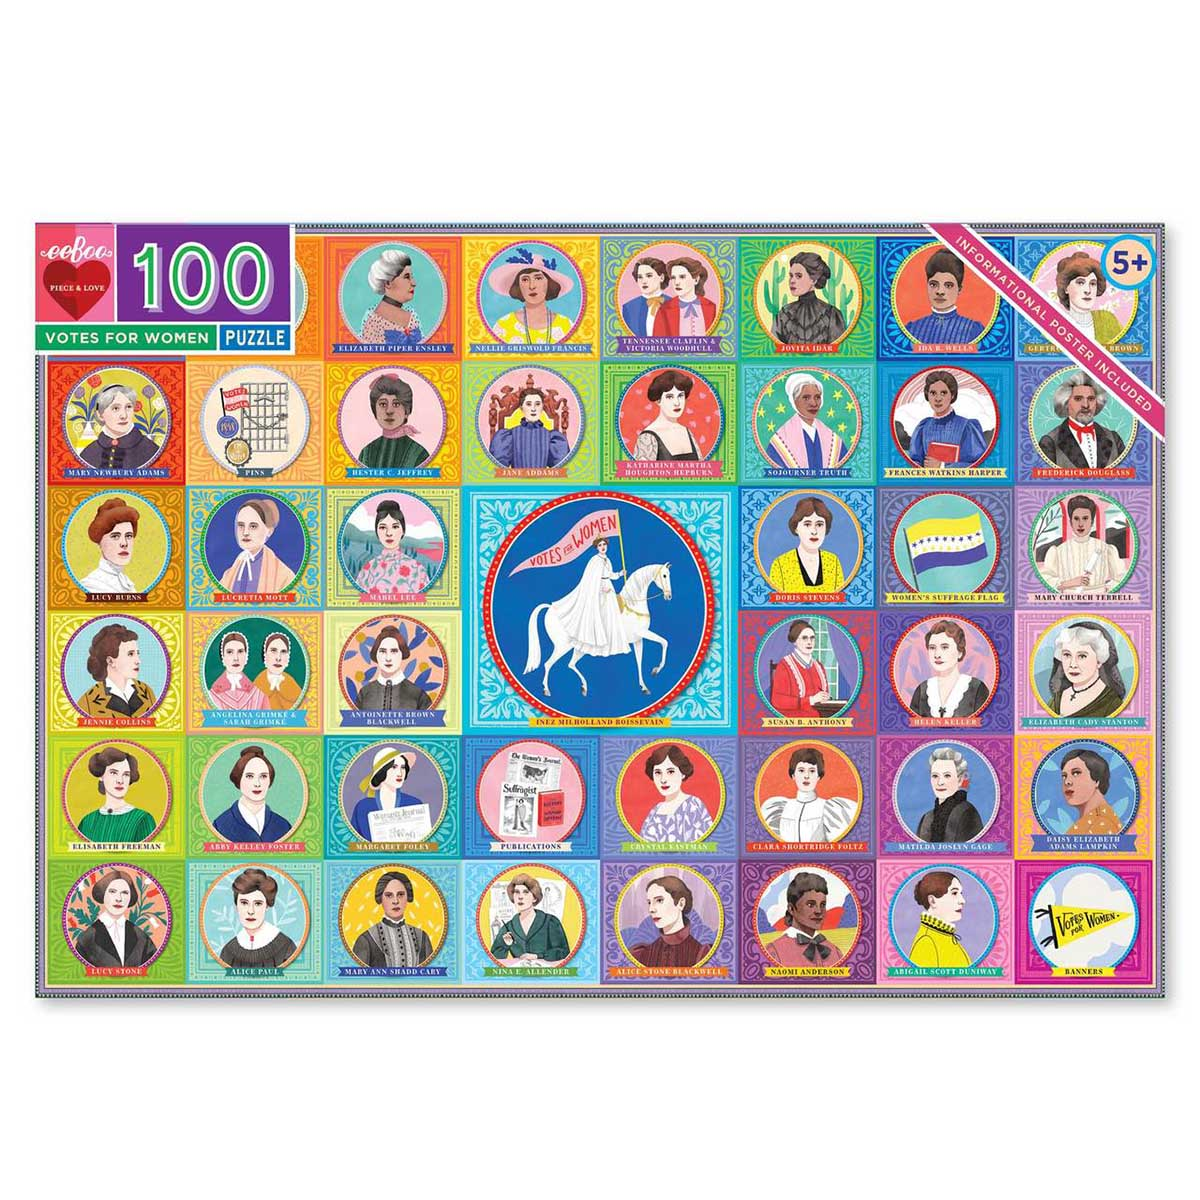 Votes for Women Inspirational Jigsaw Puzzle